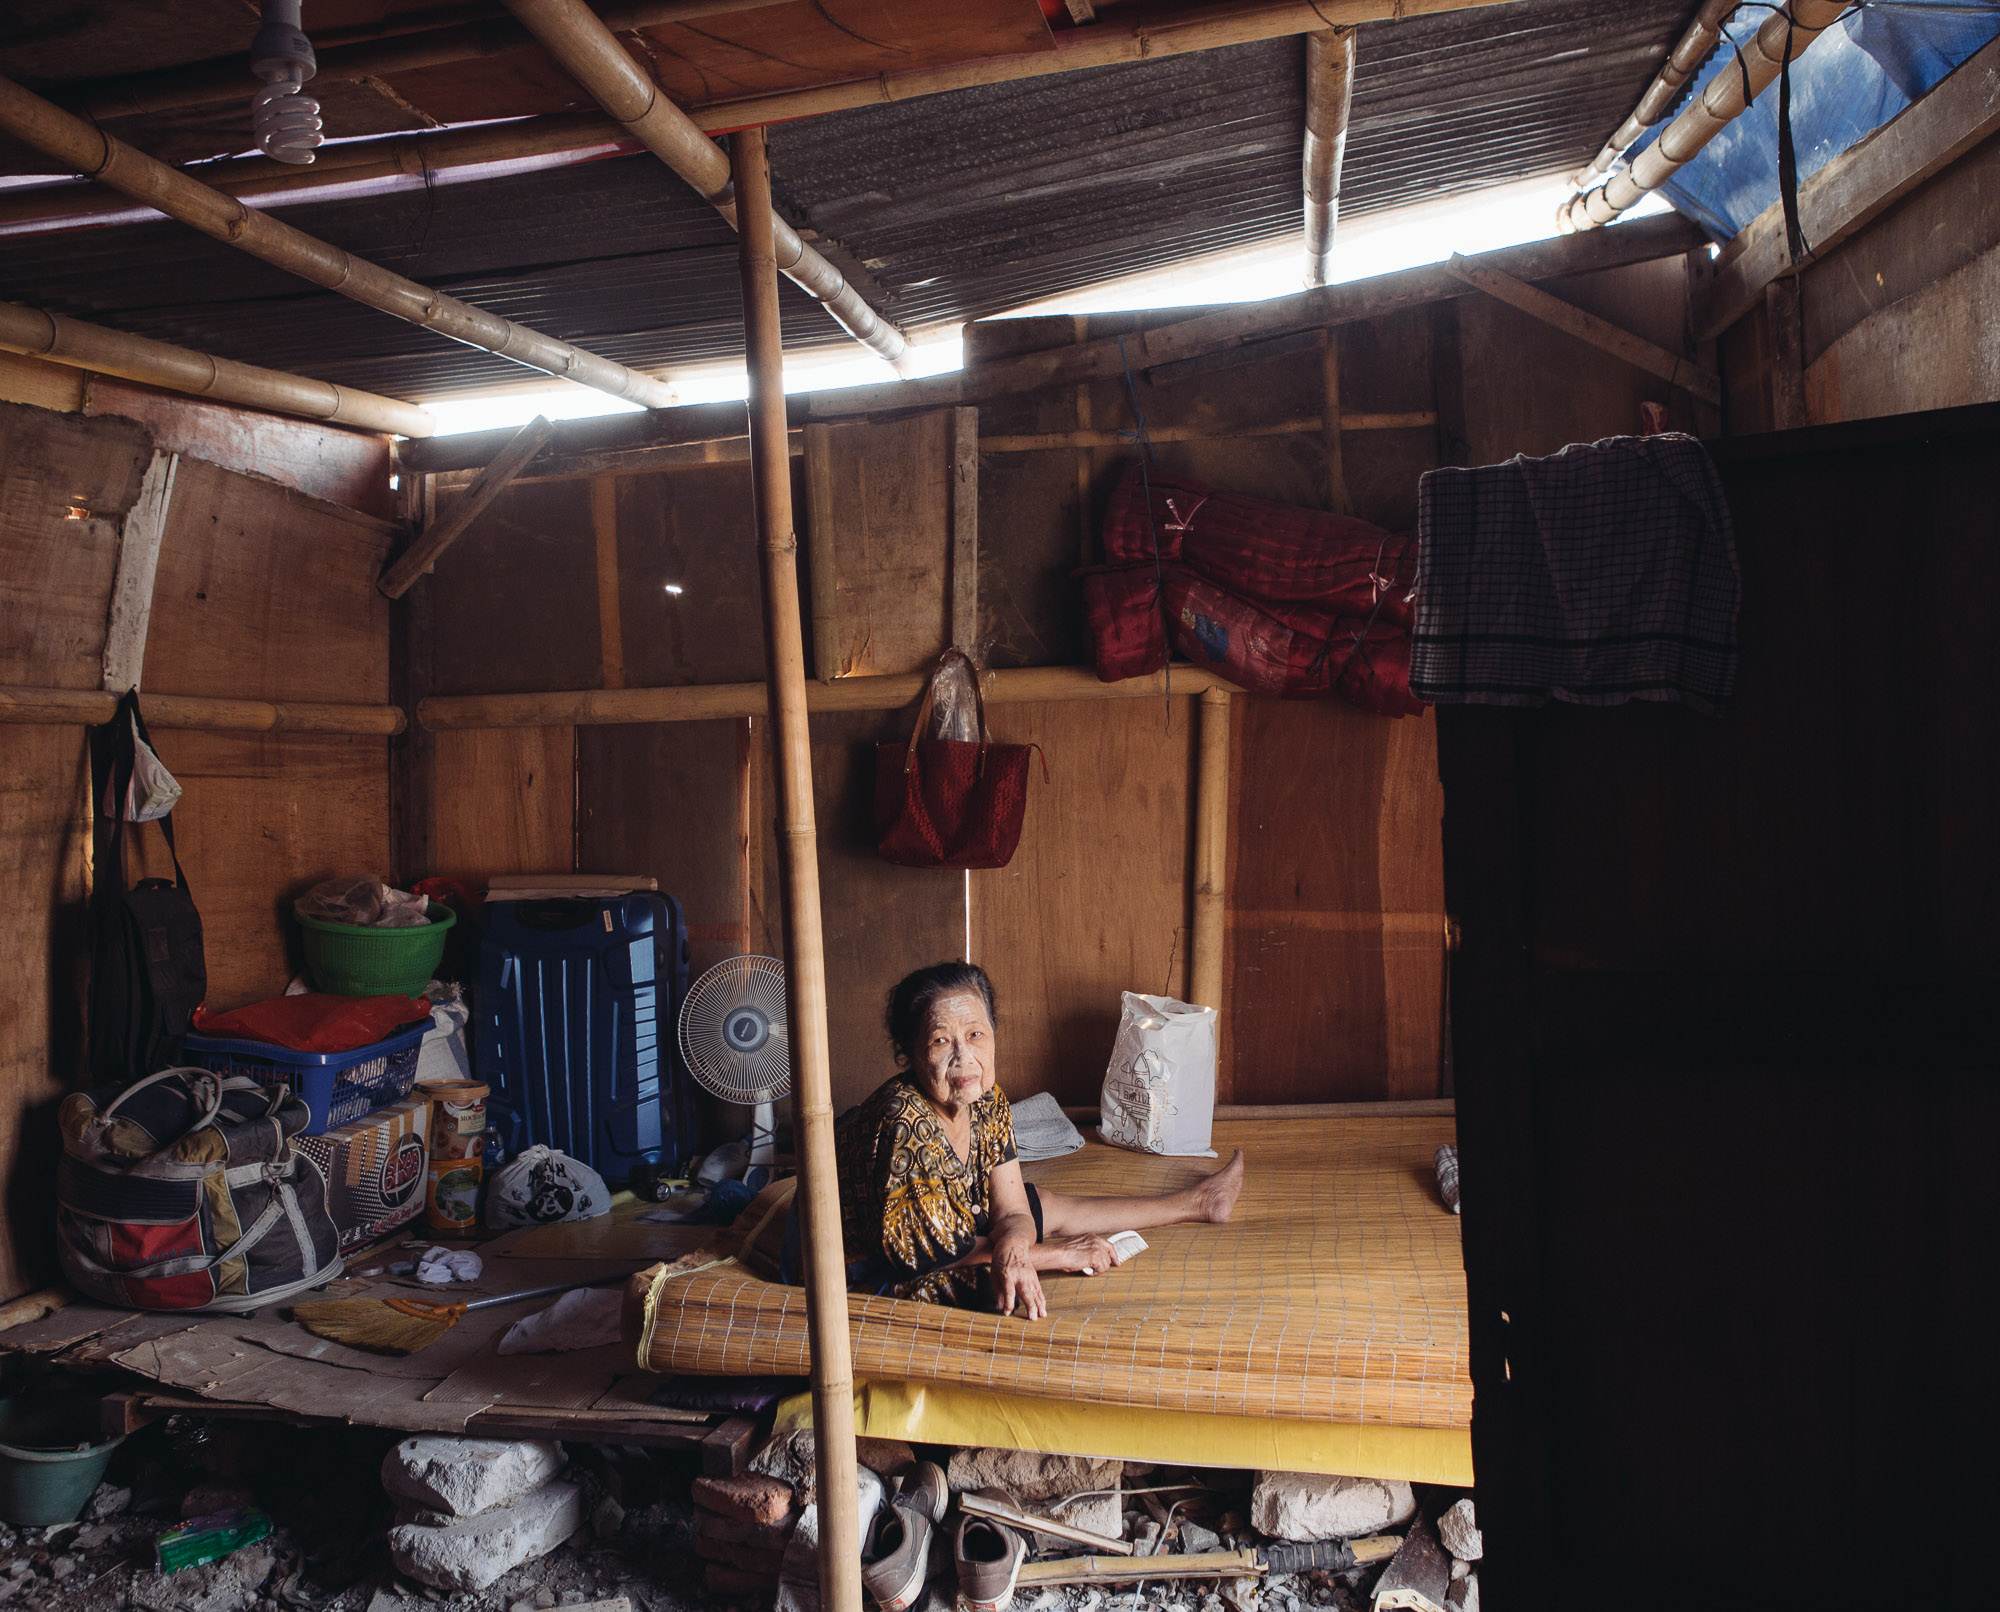 Ayuti, a resident of Pasar Ikan in North Jakarta, is among the many victims of eviction as Jakarta's government seeks to revitalize the rivers for flood prevention. Like many other Pasar Ikan residents who saw their houses destroyed, Ayuti is now living in a makeshift house built on top of rubble, and she hasn't received any compensation for her forced removal yet. (Photo by Muhammad Fadli/GroundTruth)